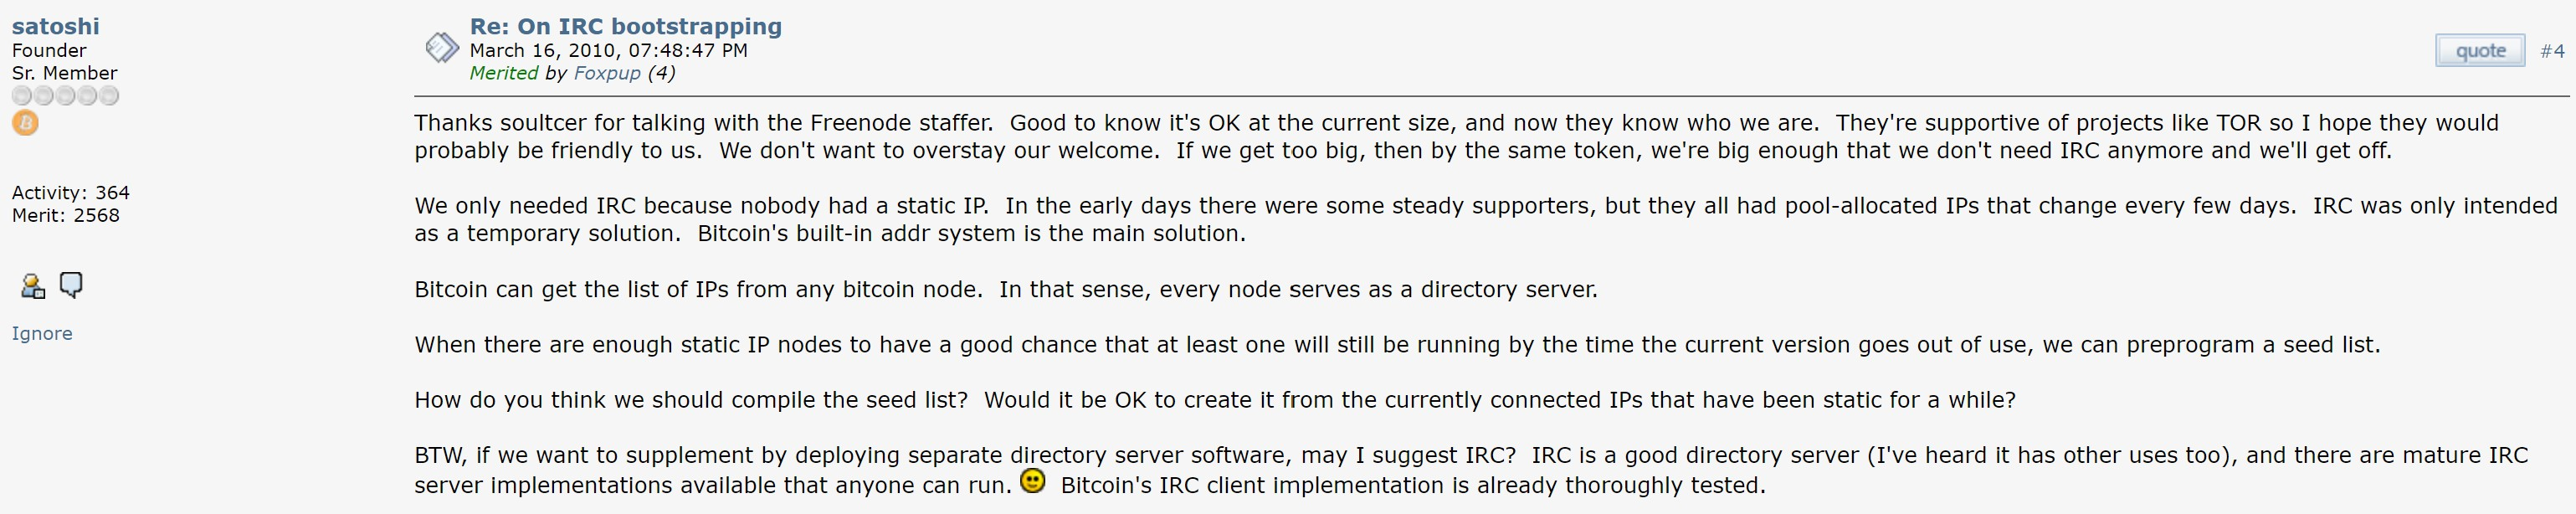 Satoshi Post on Bitcointalk Discussing IRC. Source: Bitcointalk.